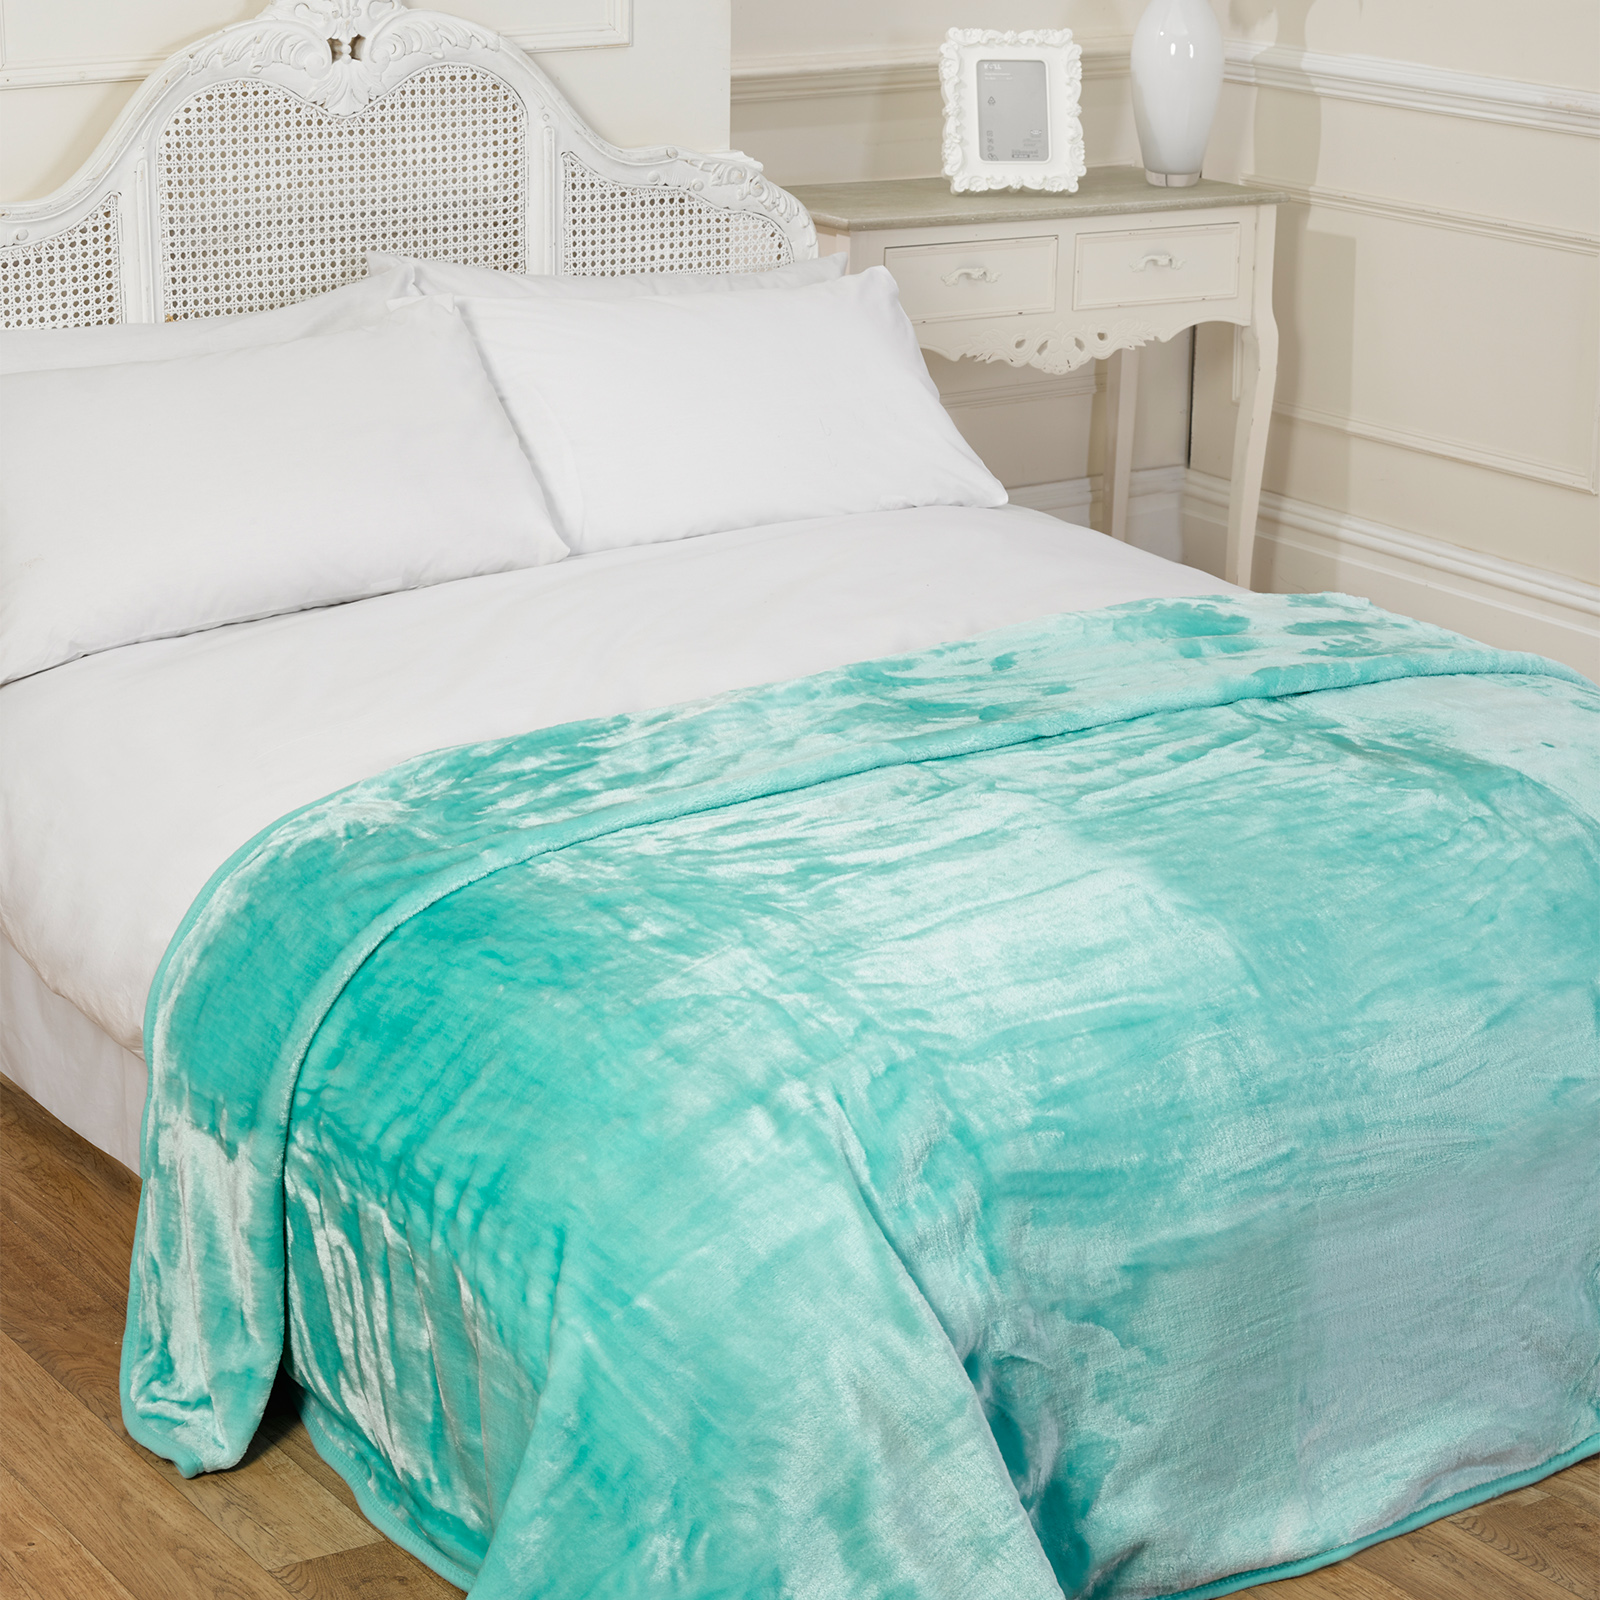 Luxury Faux Fur Aqua Mink Fleece Throw Over Sofa Bed Soft